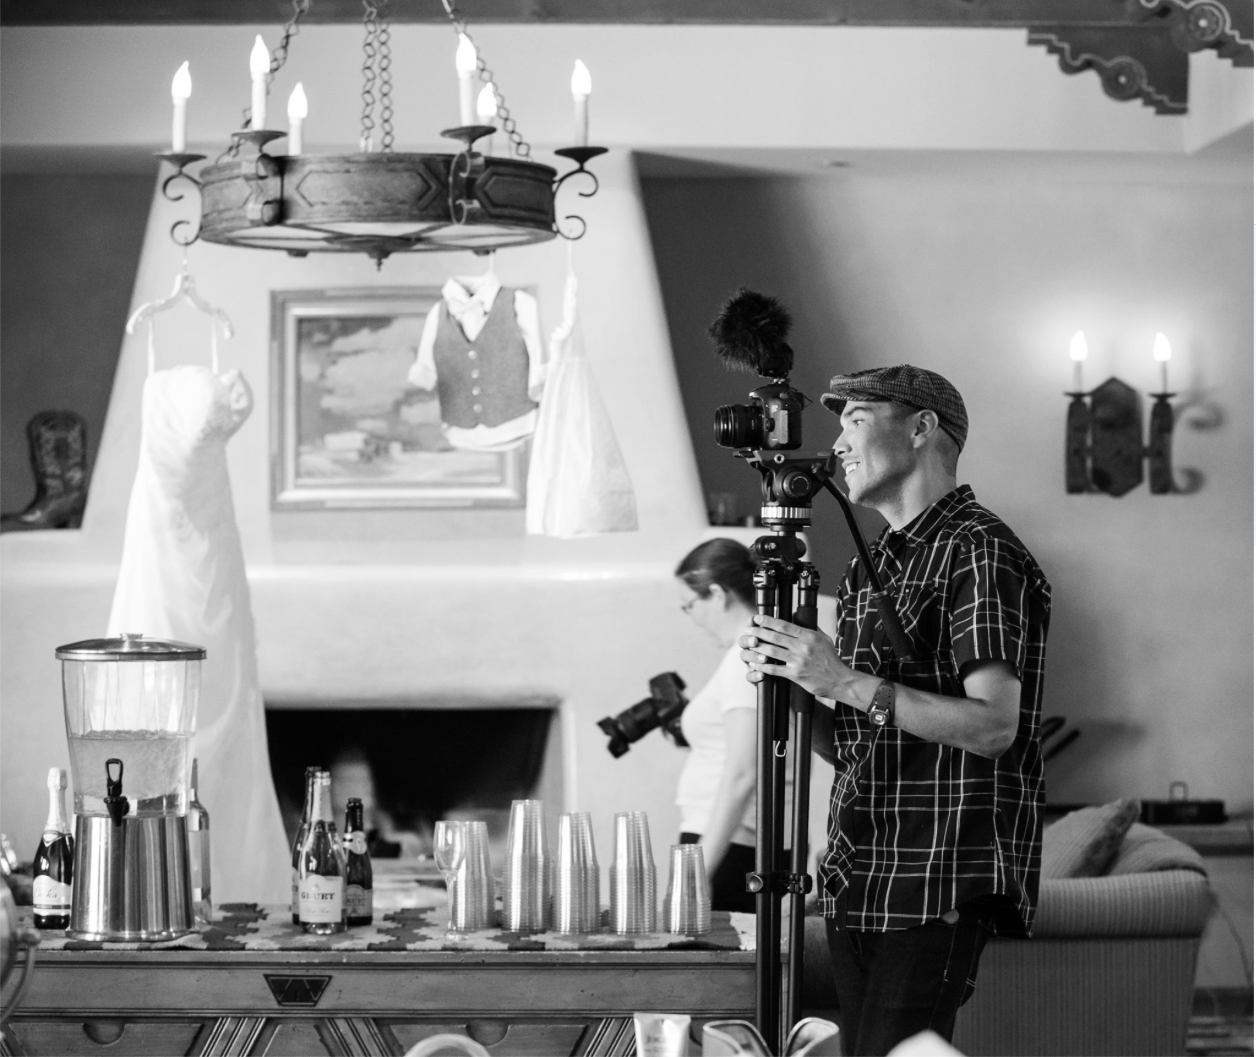 Jason Manning works magic with a camera. He has a unique way of capturing footage that makes a bride and groom so at ease. A time-lapse artist, talented and can run the show. His background stems for very high stress shoots for the snowboarding and skateboard industry and has gone above and beyond with taking his talents to the wedding film industry.